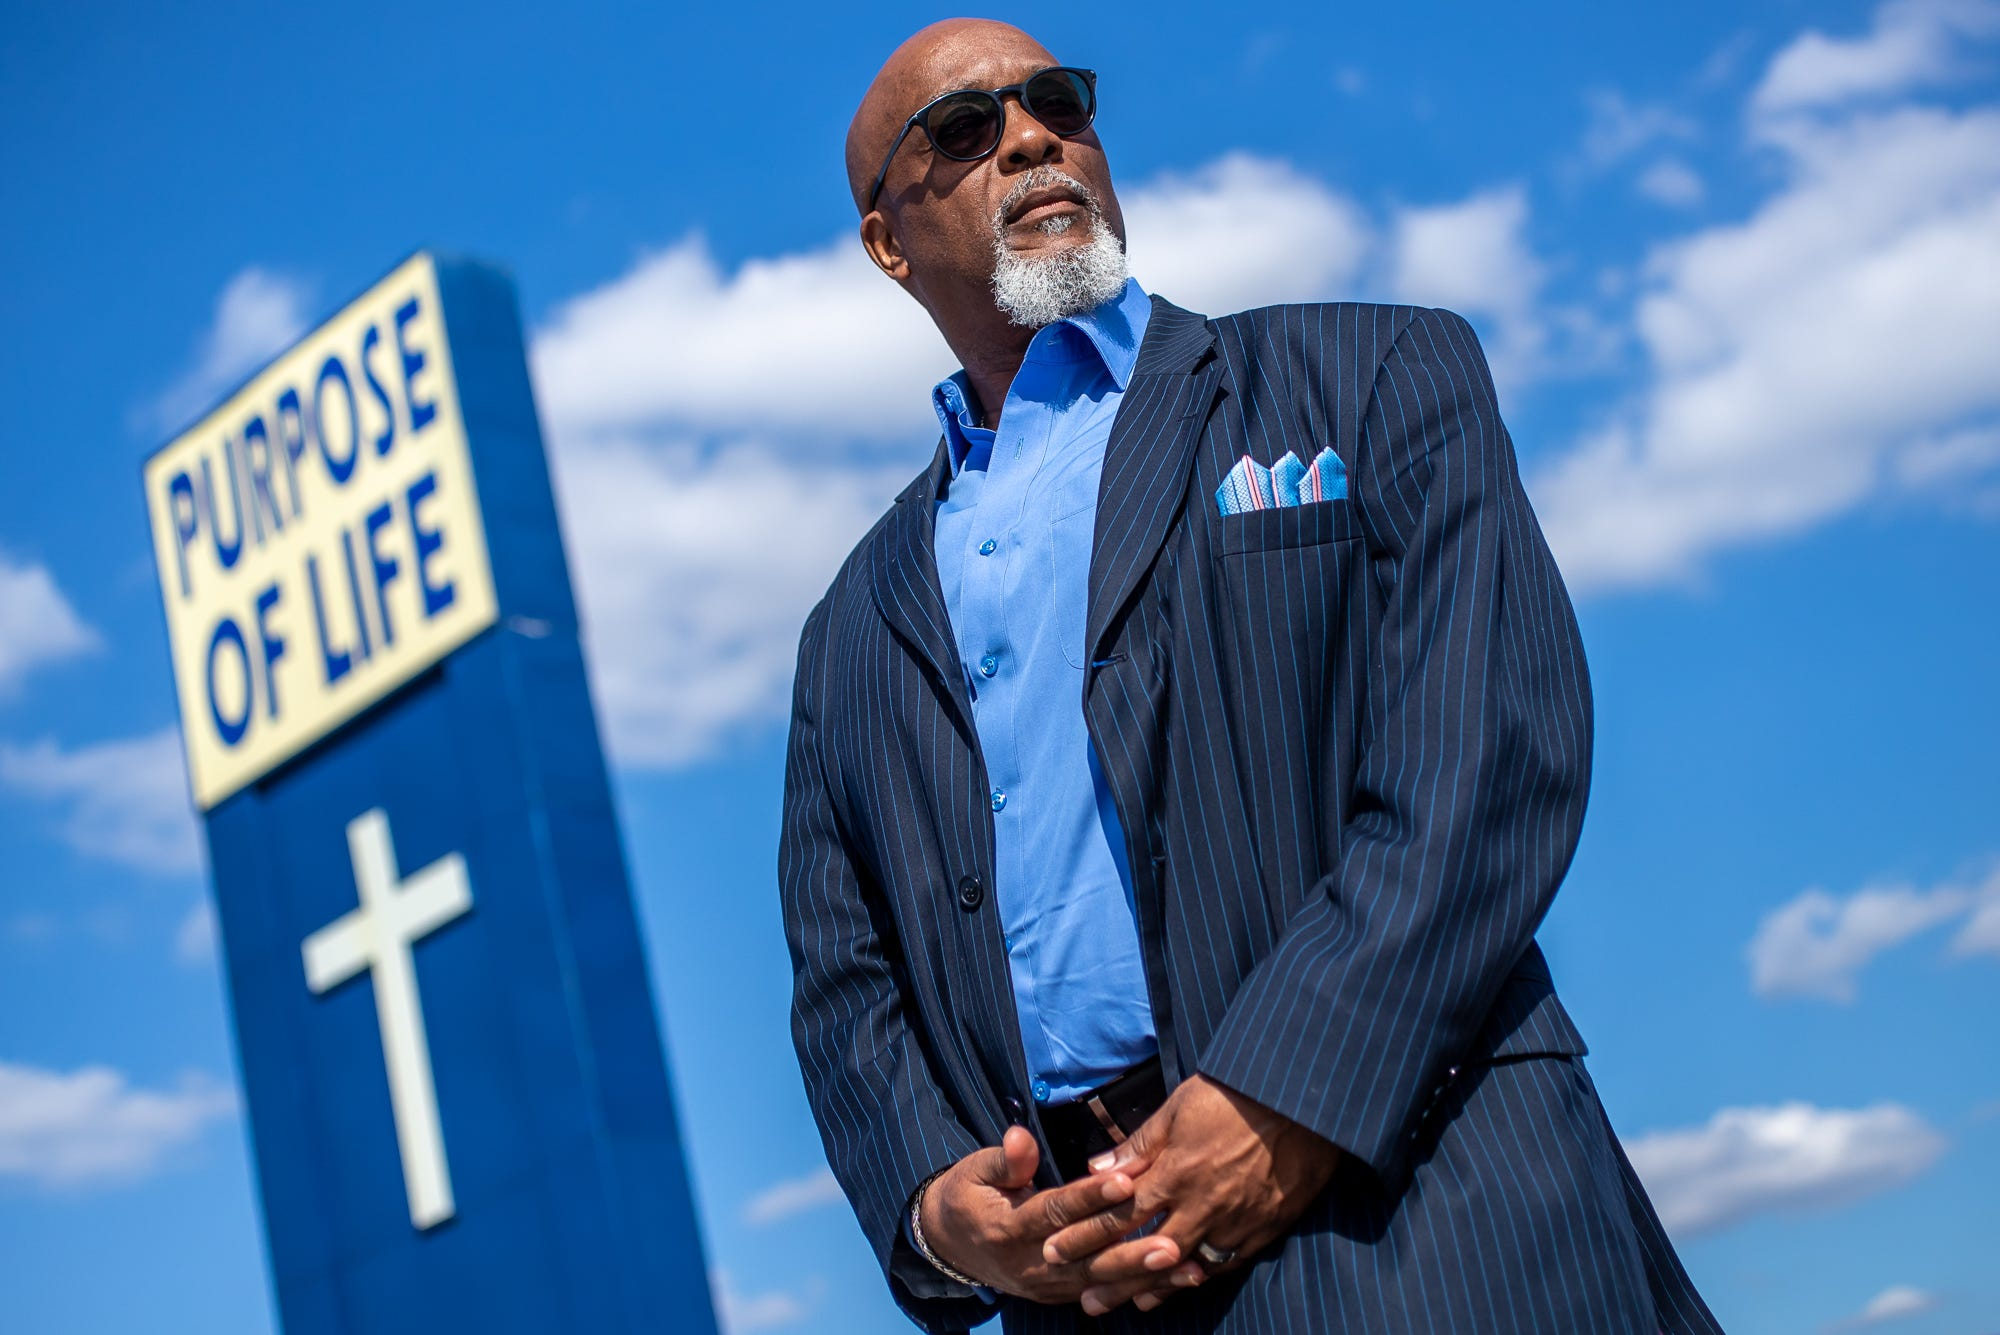 """Rev. David Greene Sr., senior pastor at Purpose of Life Ministries and president of Concerned Clergy of Indianapolis, poses for a portrait outside of his church in Indianapolis on Friday, Sept. 25, 2020. Concerned Clergy of Indianapolis is an advocacy organization that began in the 1960s as part of the civil rights movement, focusing on economics, education, health and public safety. """"Many times, the police department sees it as us versus them, and them is everybody else,"""" Greene said. """"And so if you don't agree with all their policies and practices that you're against them when in reality you're not against them. I want to see every police officer go home. We don't want to see any police officer injured. We want a quality police department. We don't want to see one that takes shortcuts or exploits people, the ones whom they are duty-bound to protect and serve."""""""